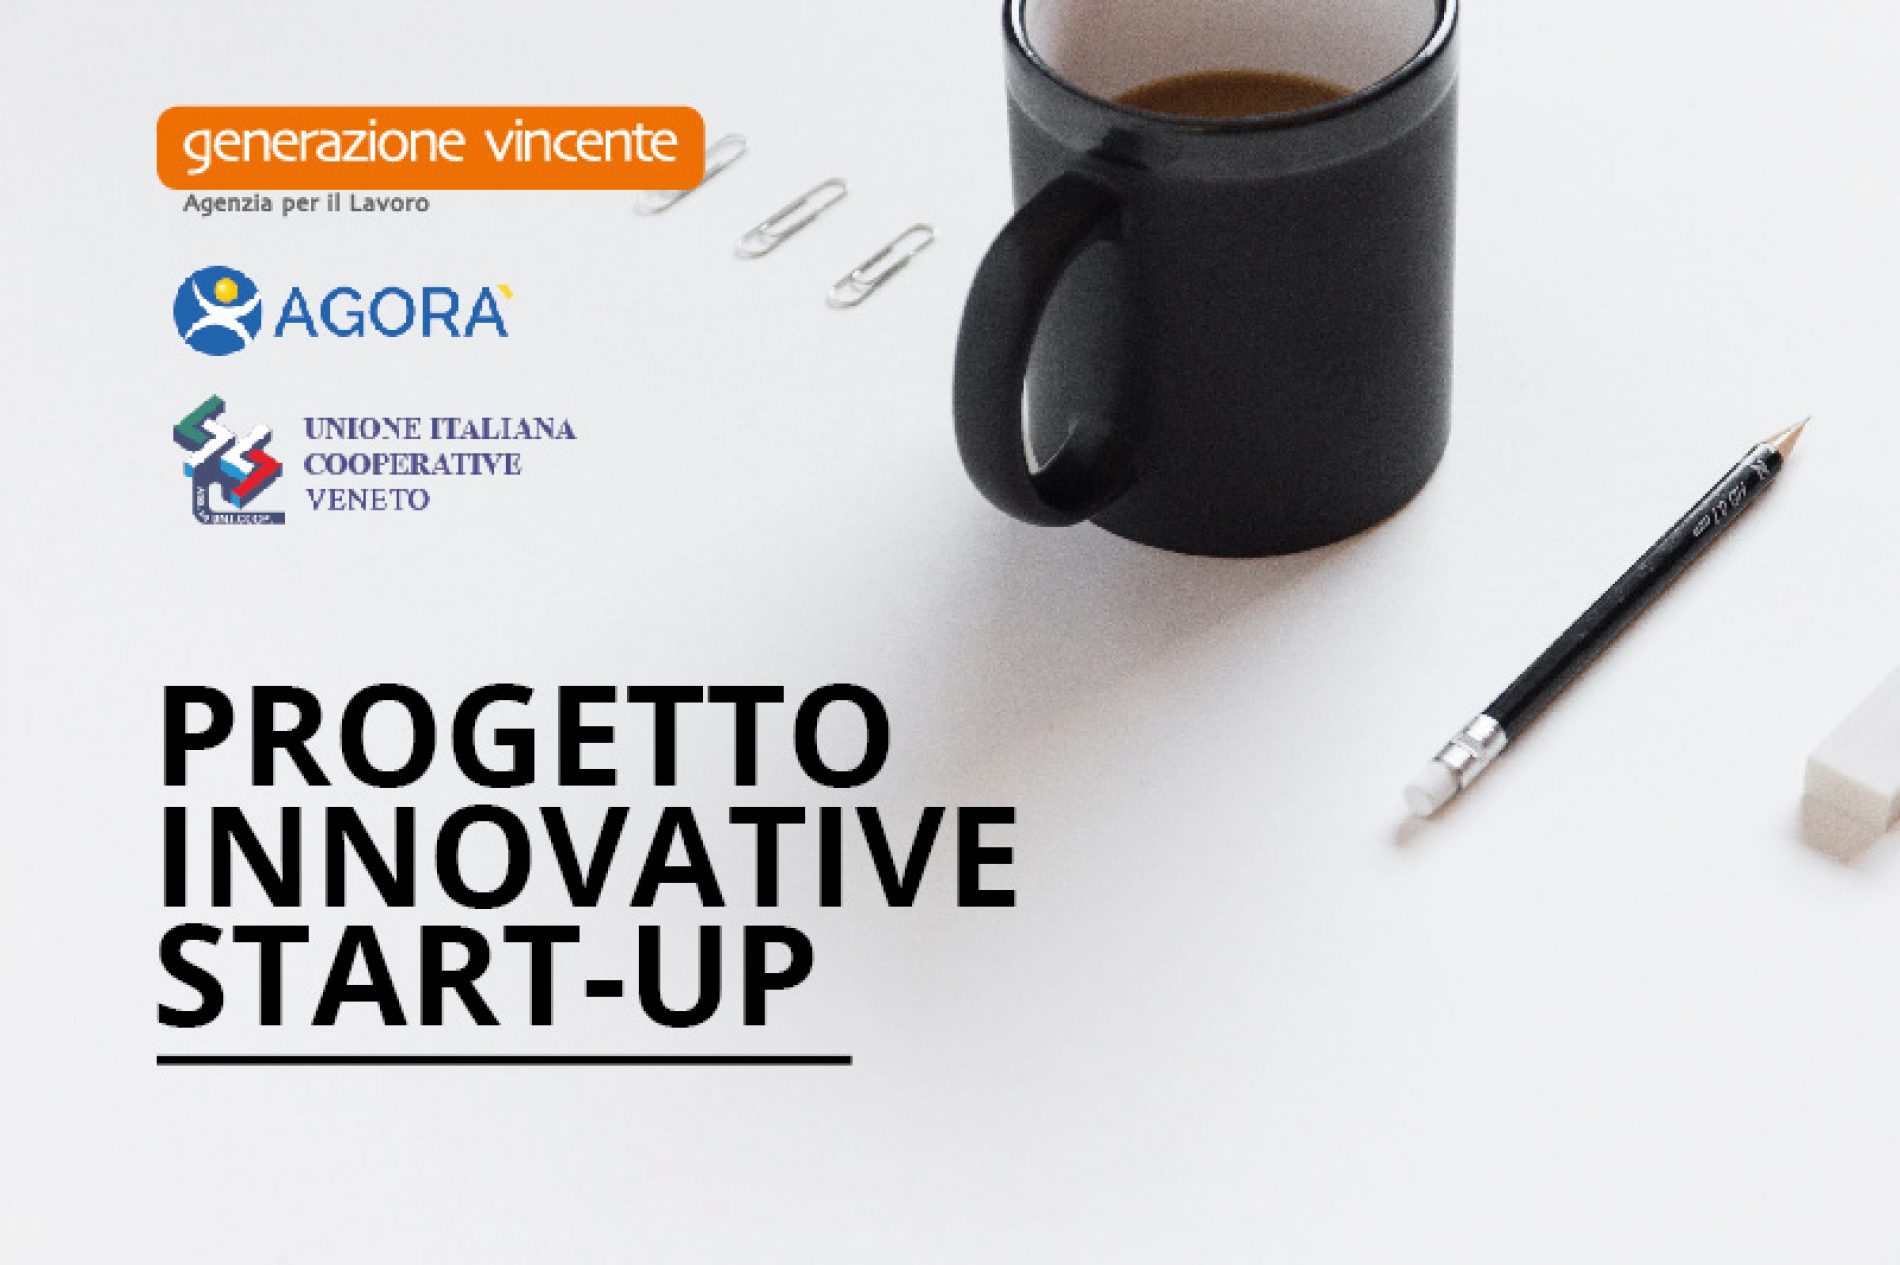 Progetto INNOVATIVE START-UP in collaborazione con Agorà e UN.I.COOP Veneto